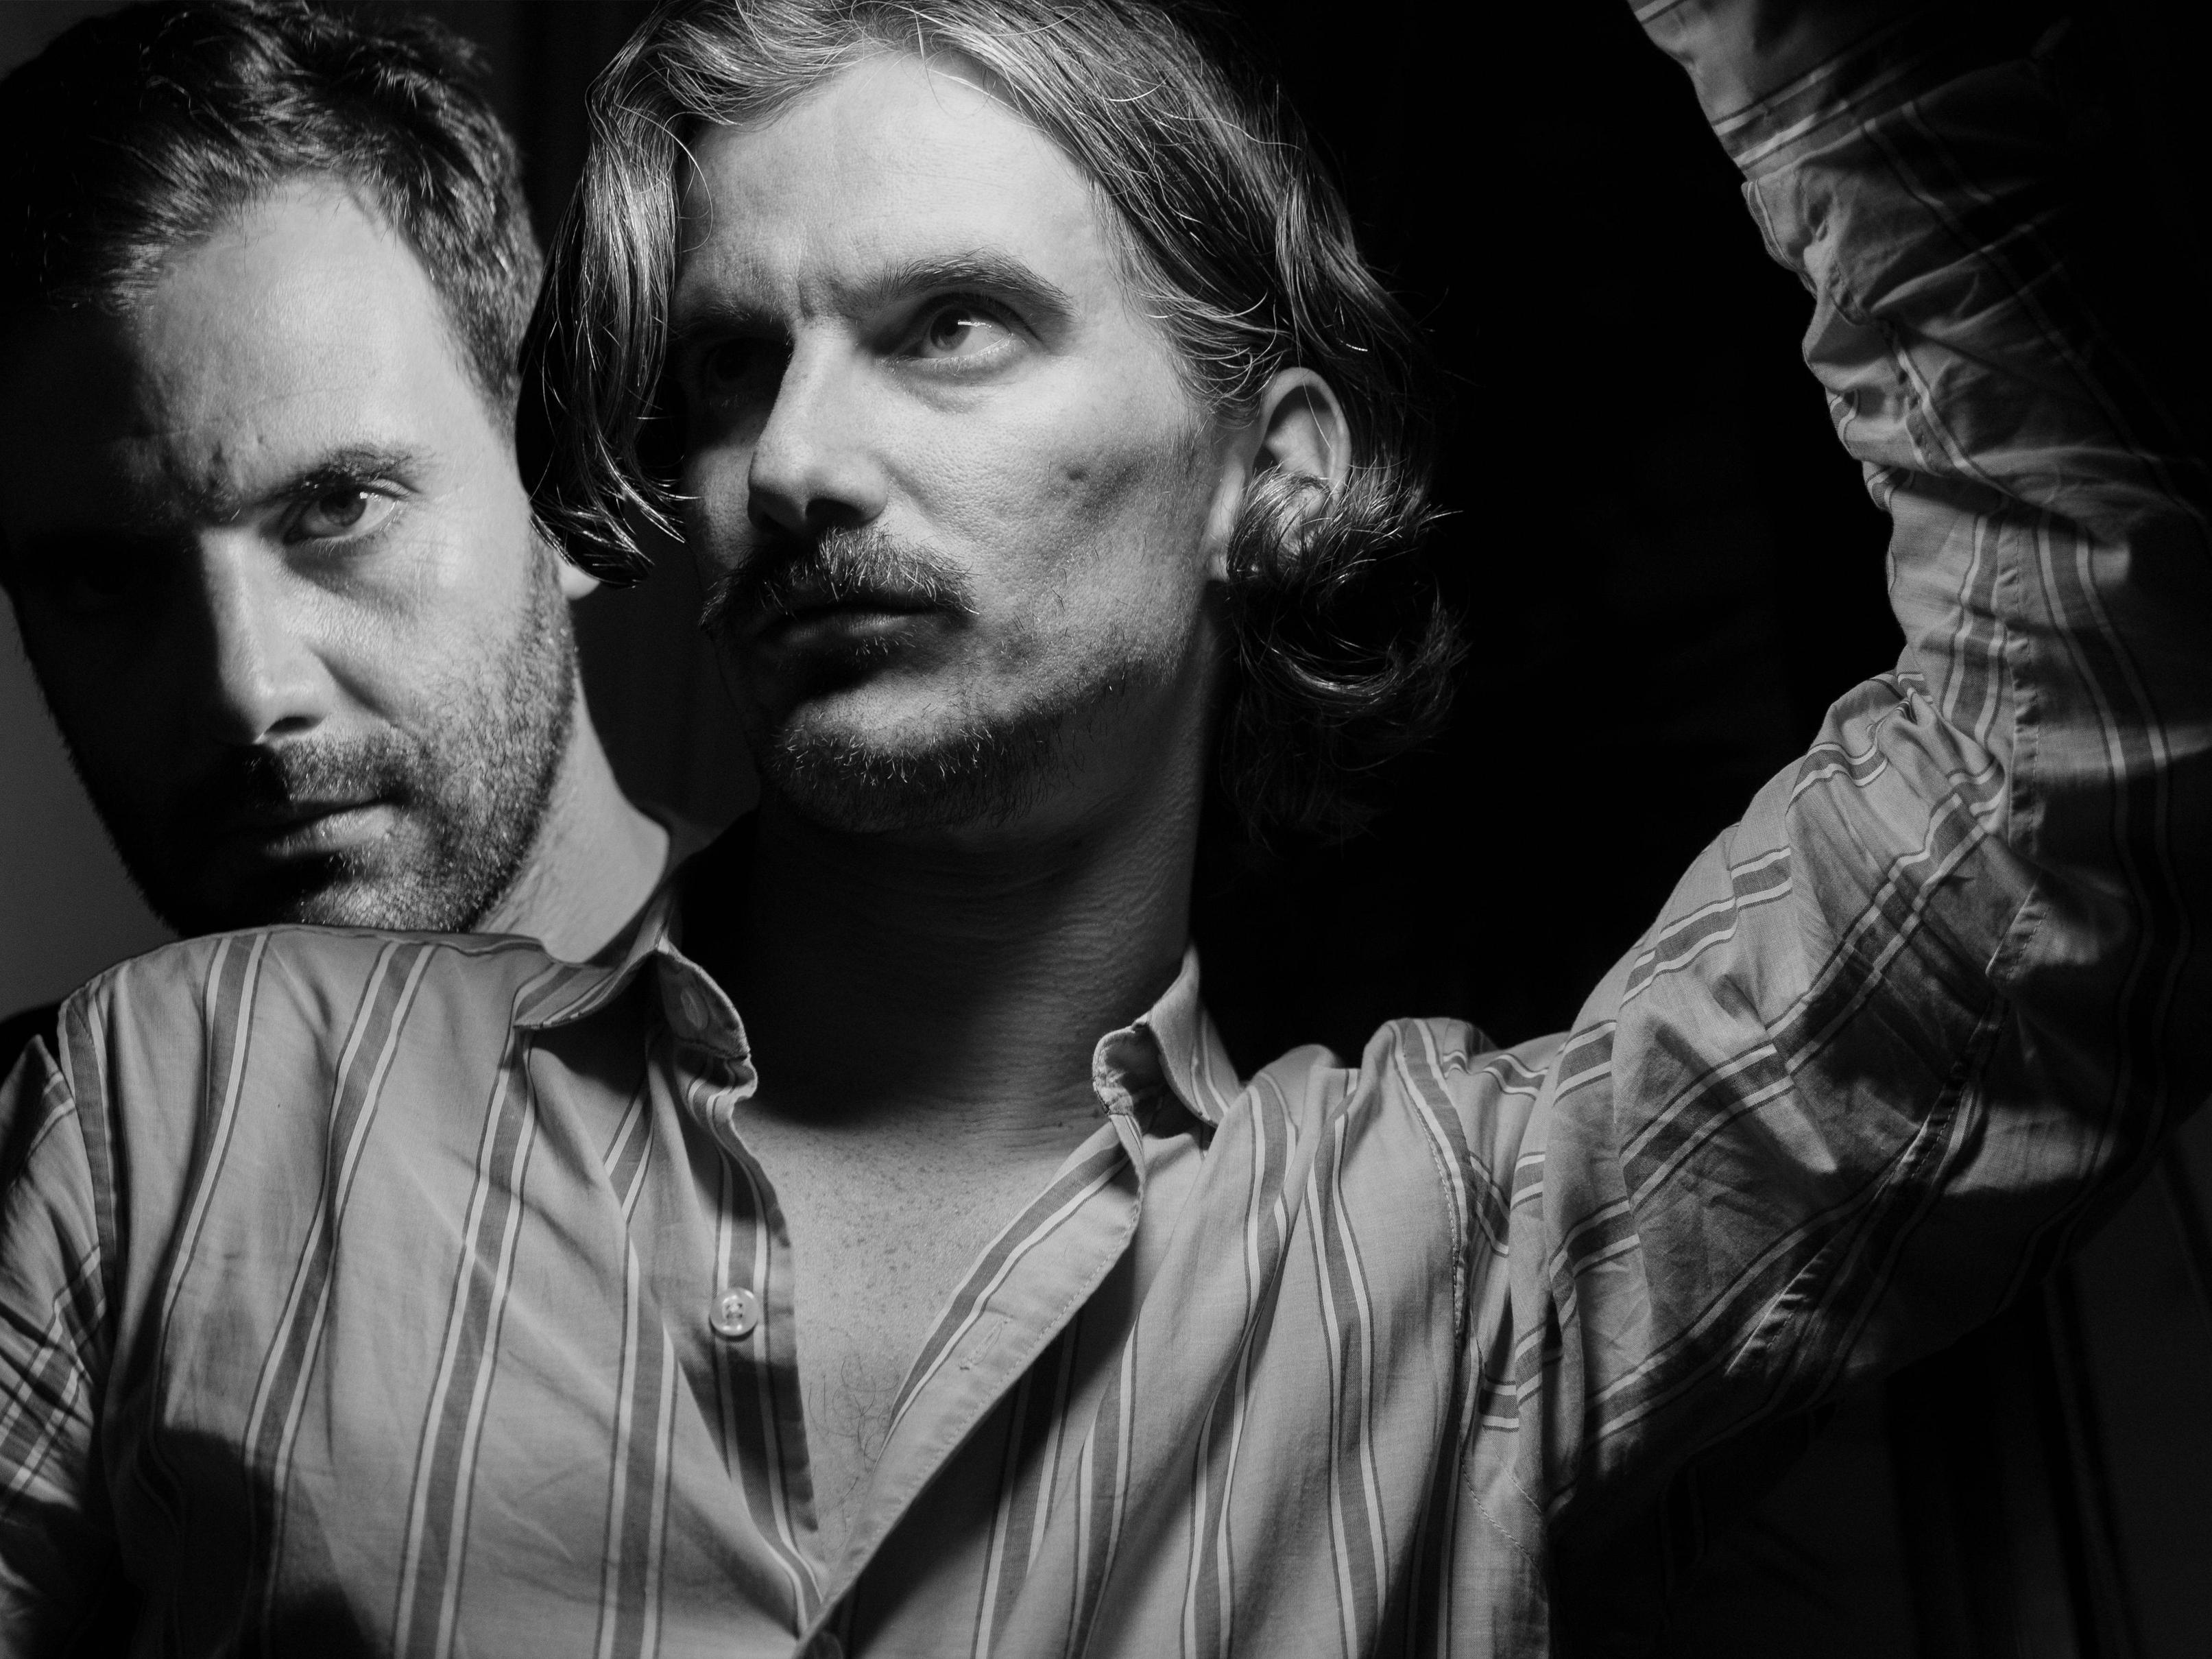 New Duo stream new self-titled LP